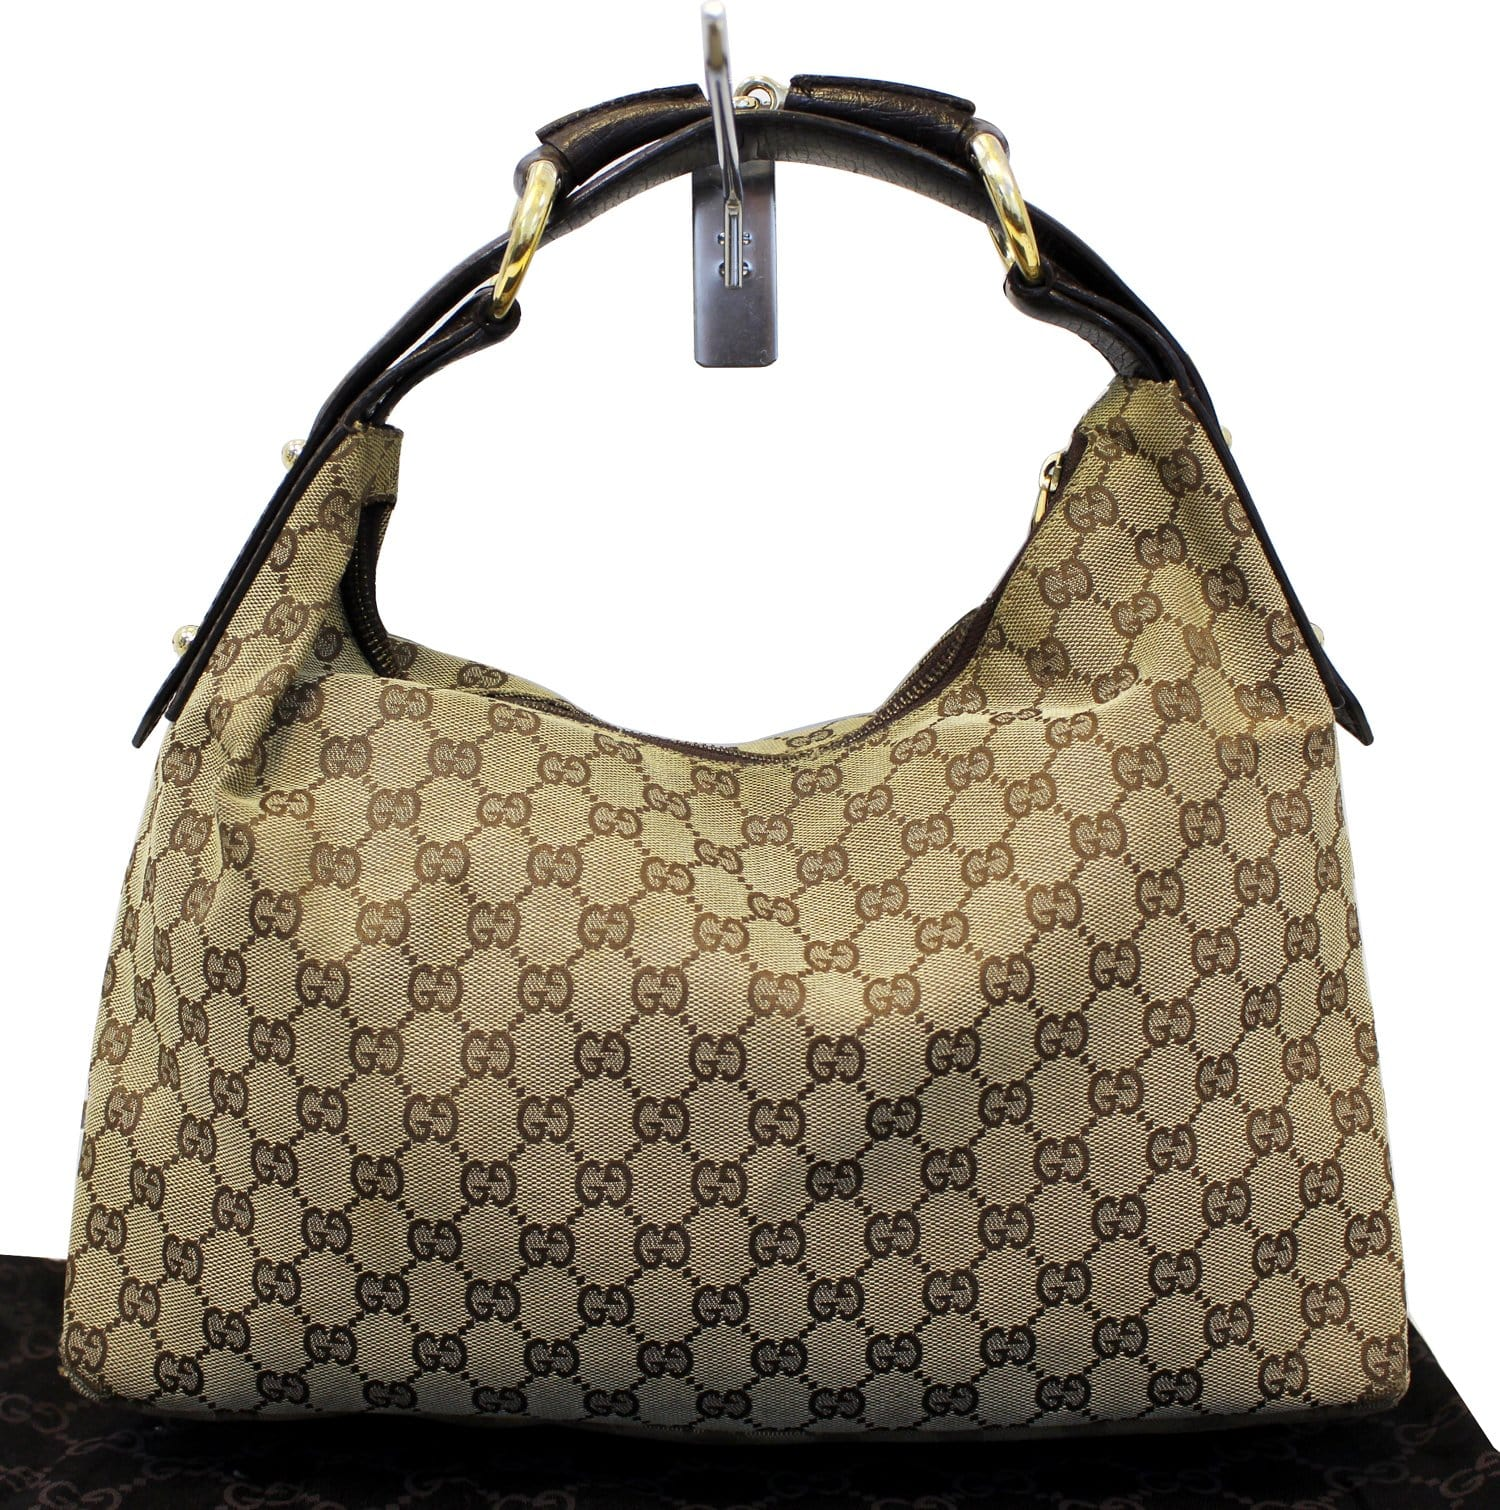 33696b10f83e93 GUCCI Beige GG Canvas Medium Horsebit Hobo Bag